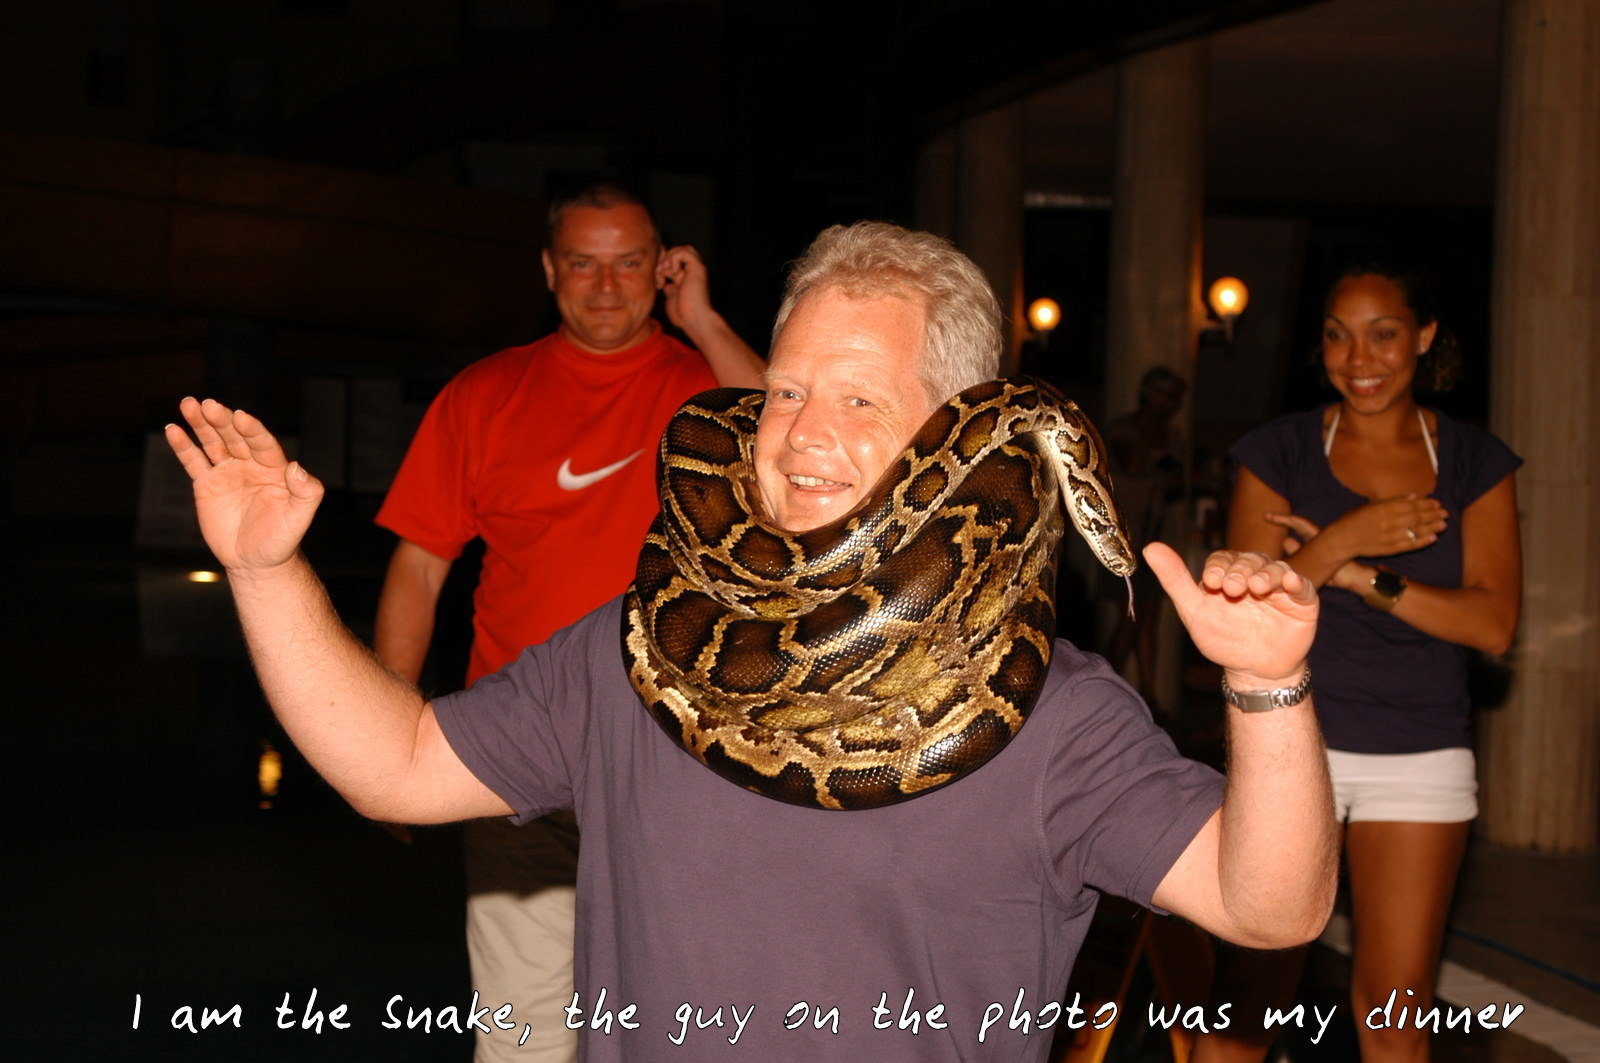 I am the snake. The guy on the photo was my dinner.